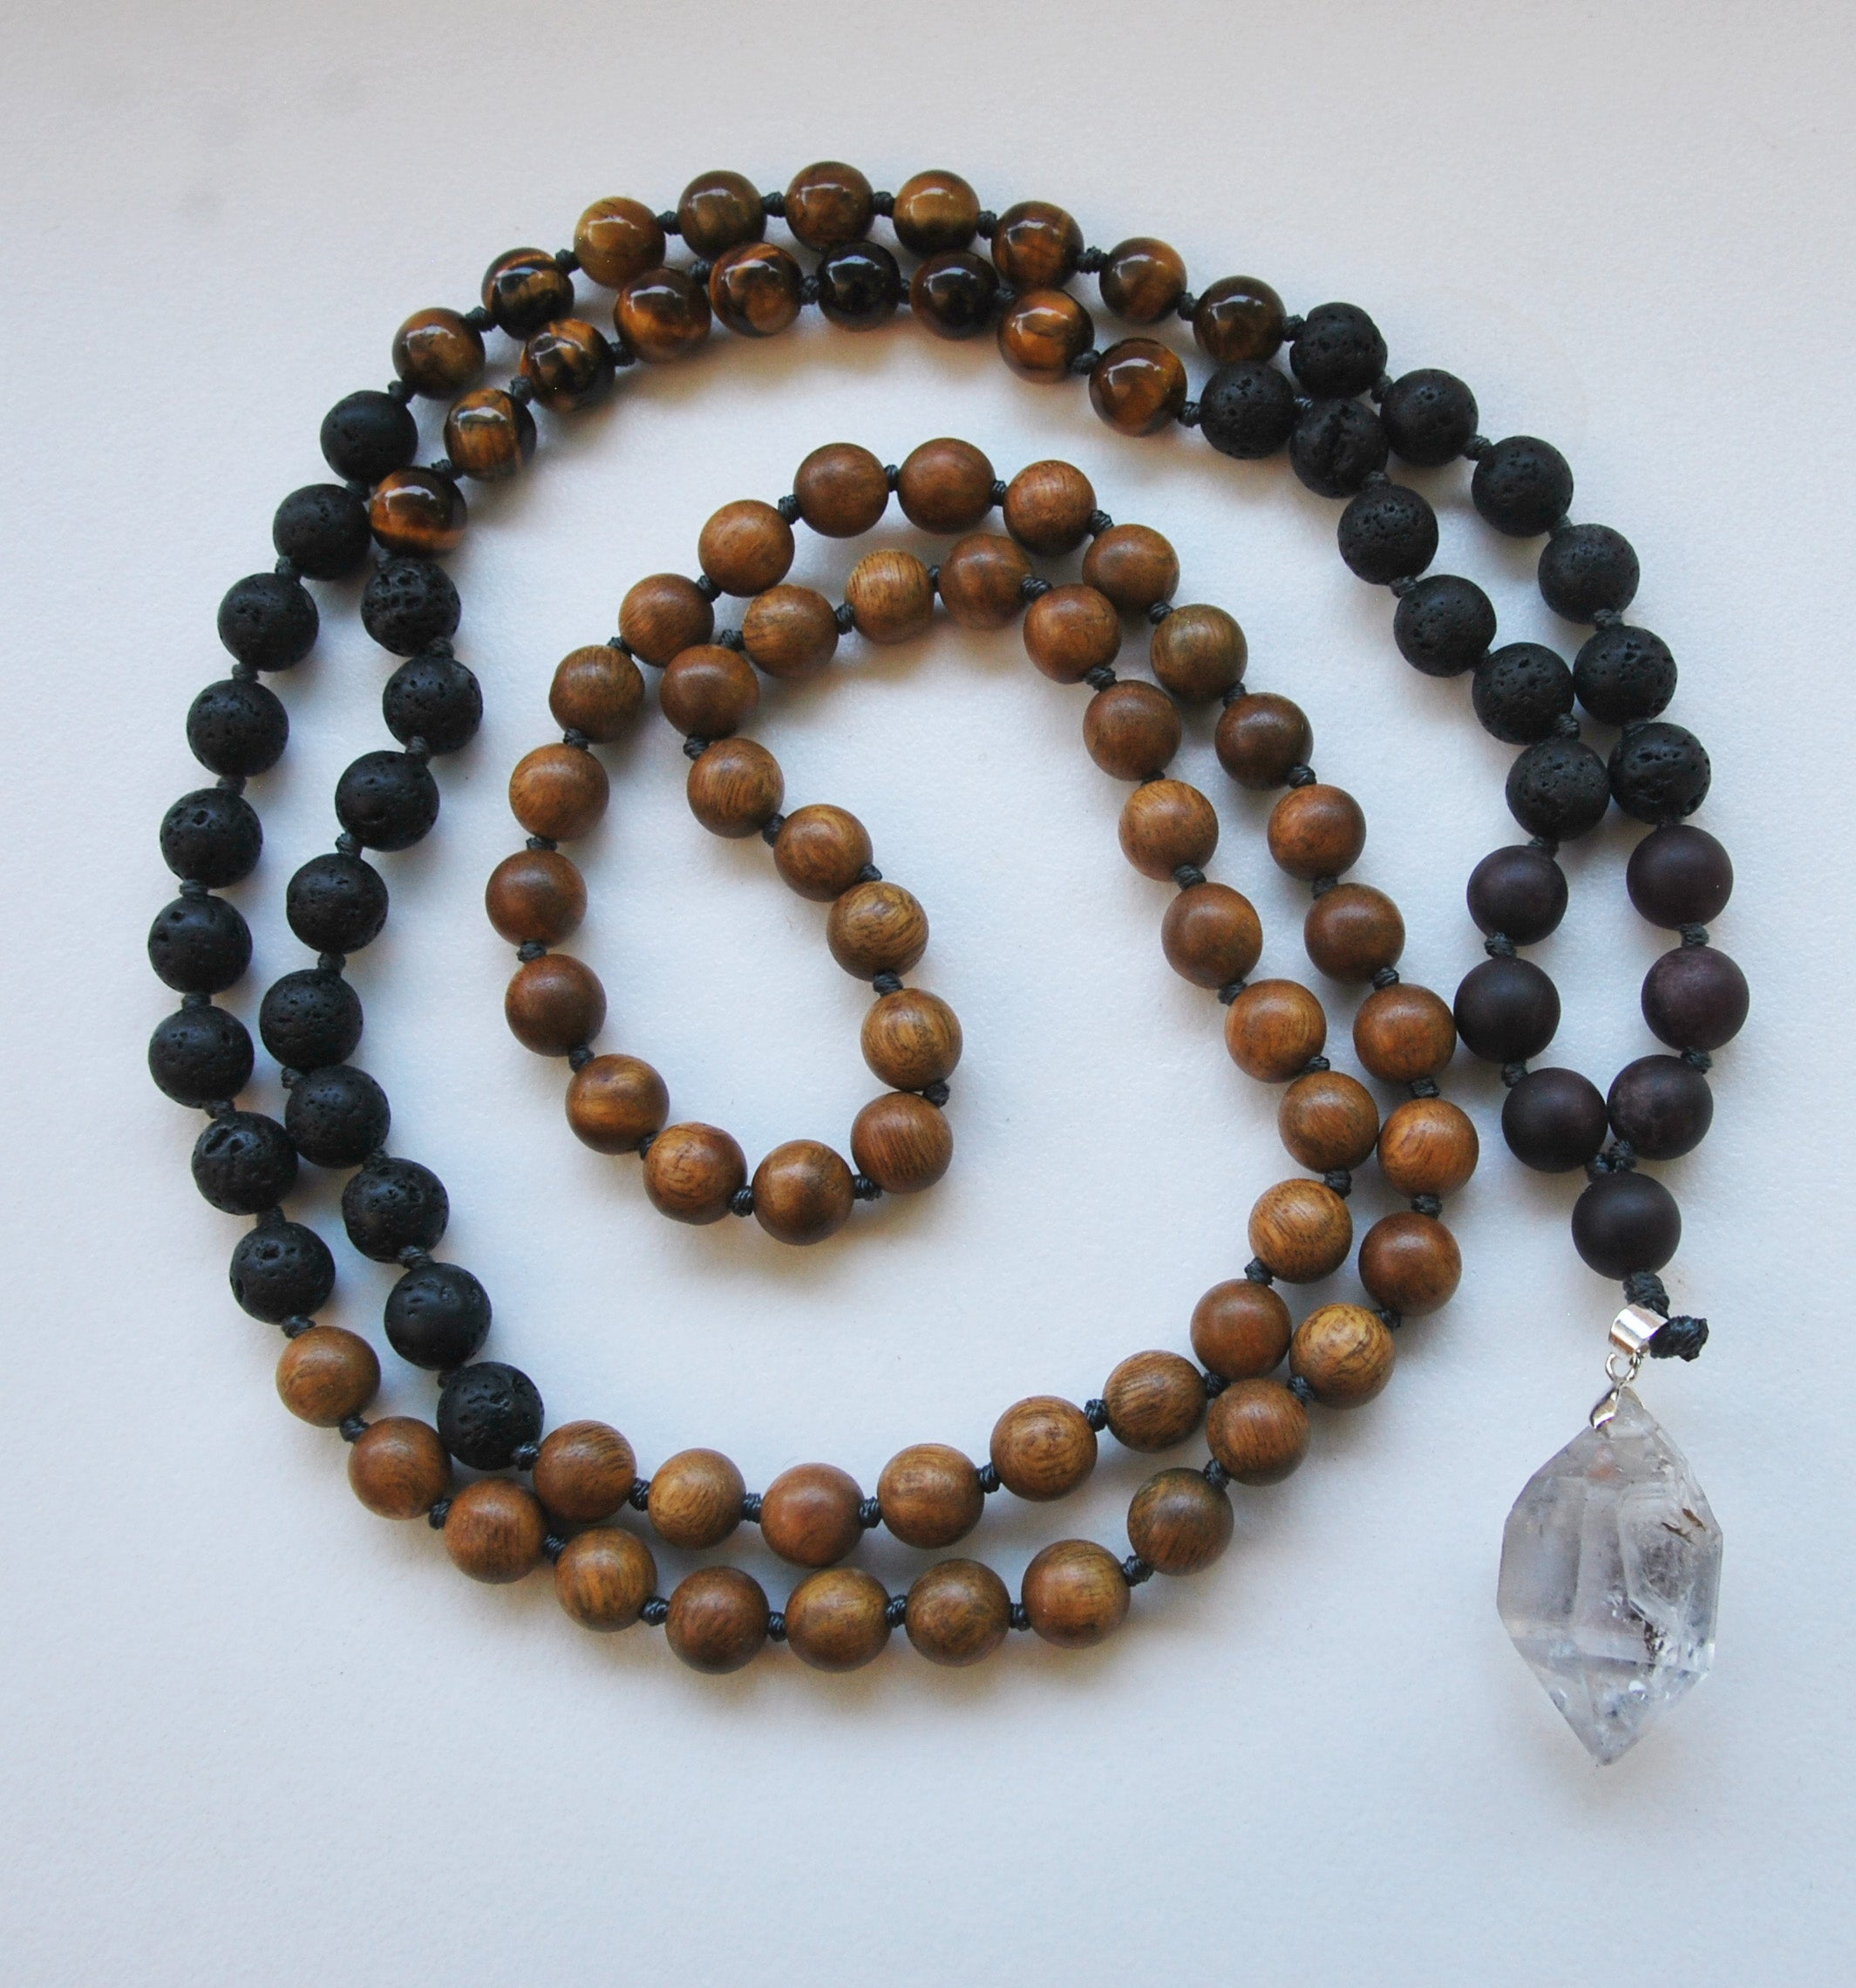 8mm Green Sandalwood & Tigers Eye 108 Knotted Mala Necklace with Crystal Pendant